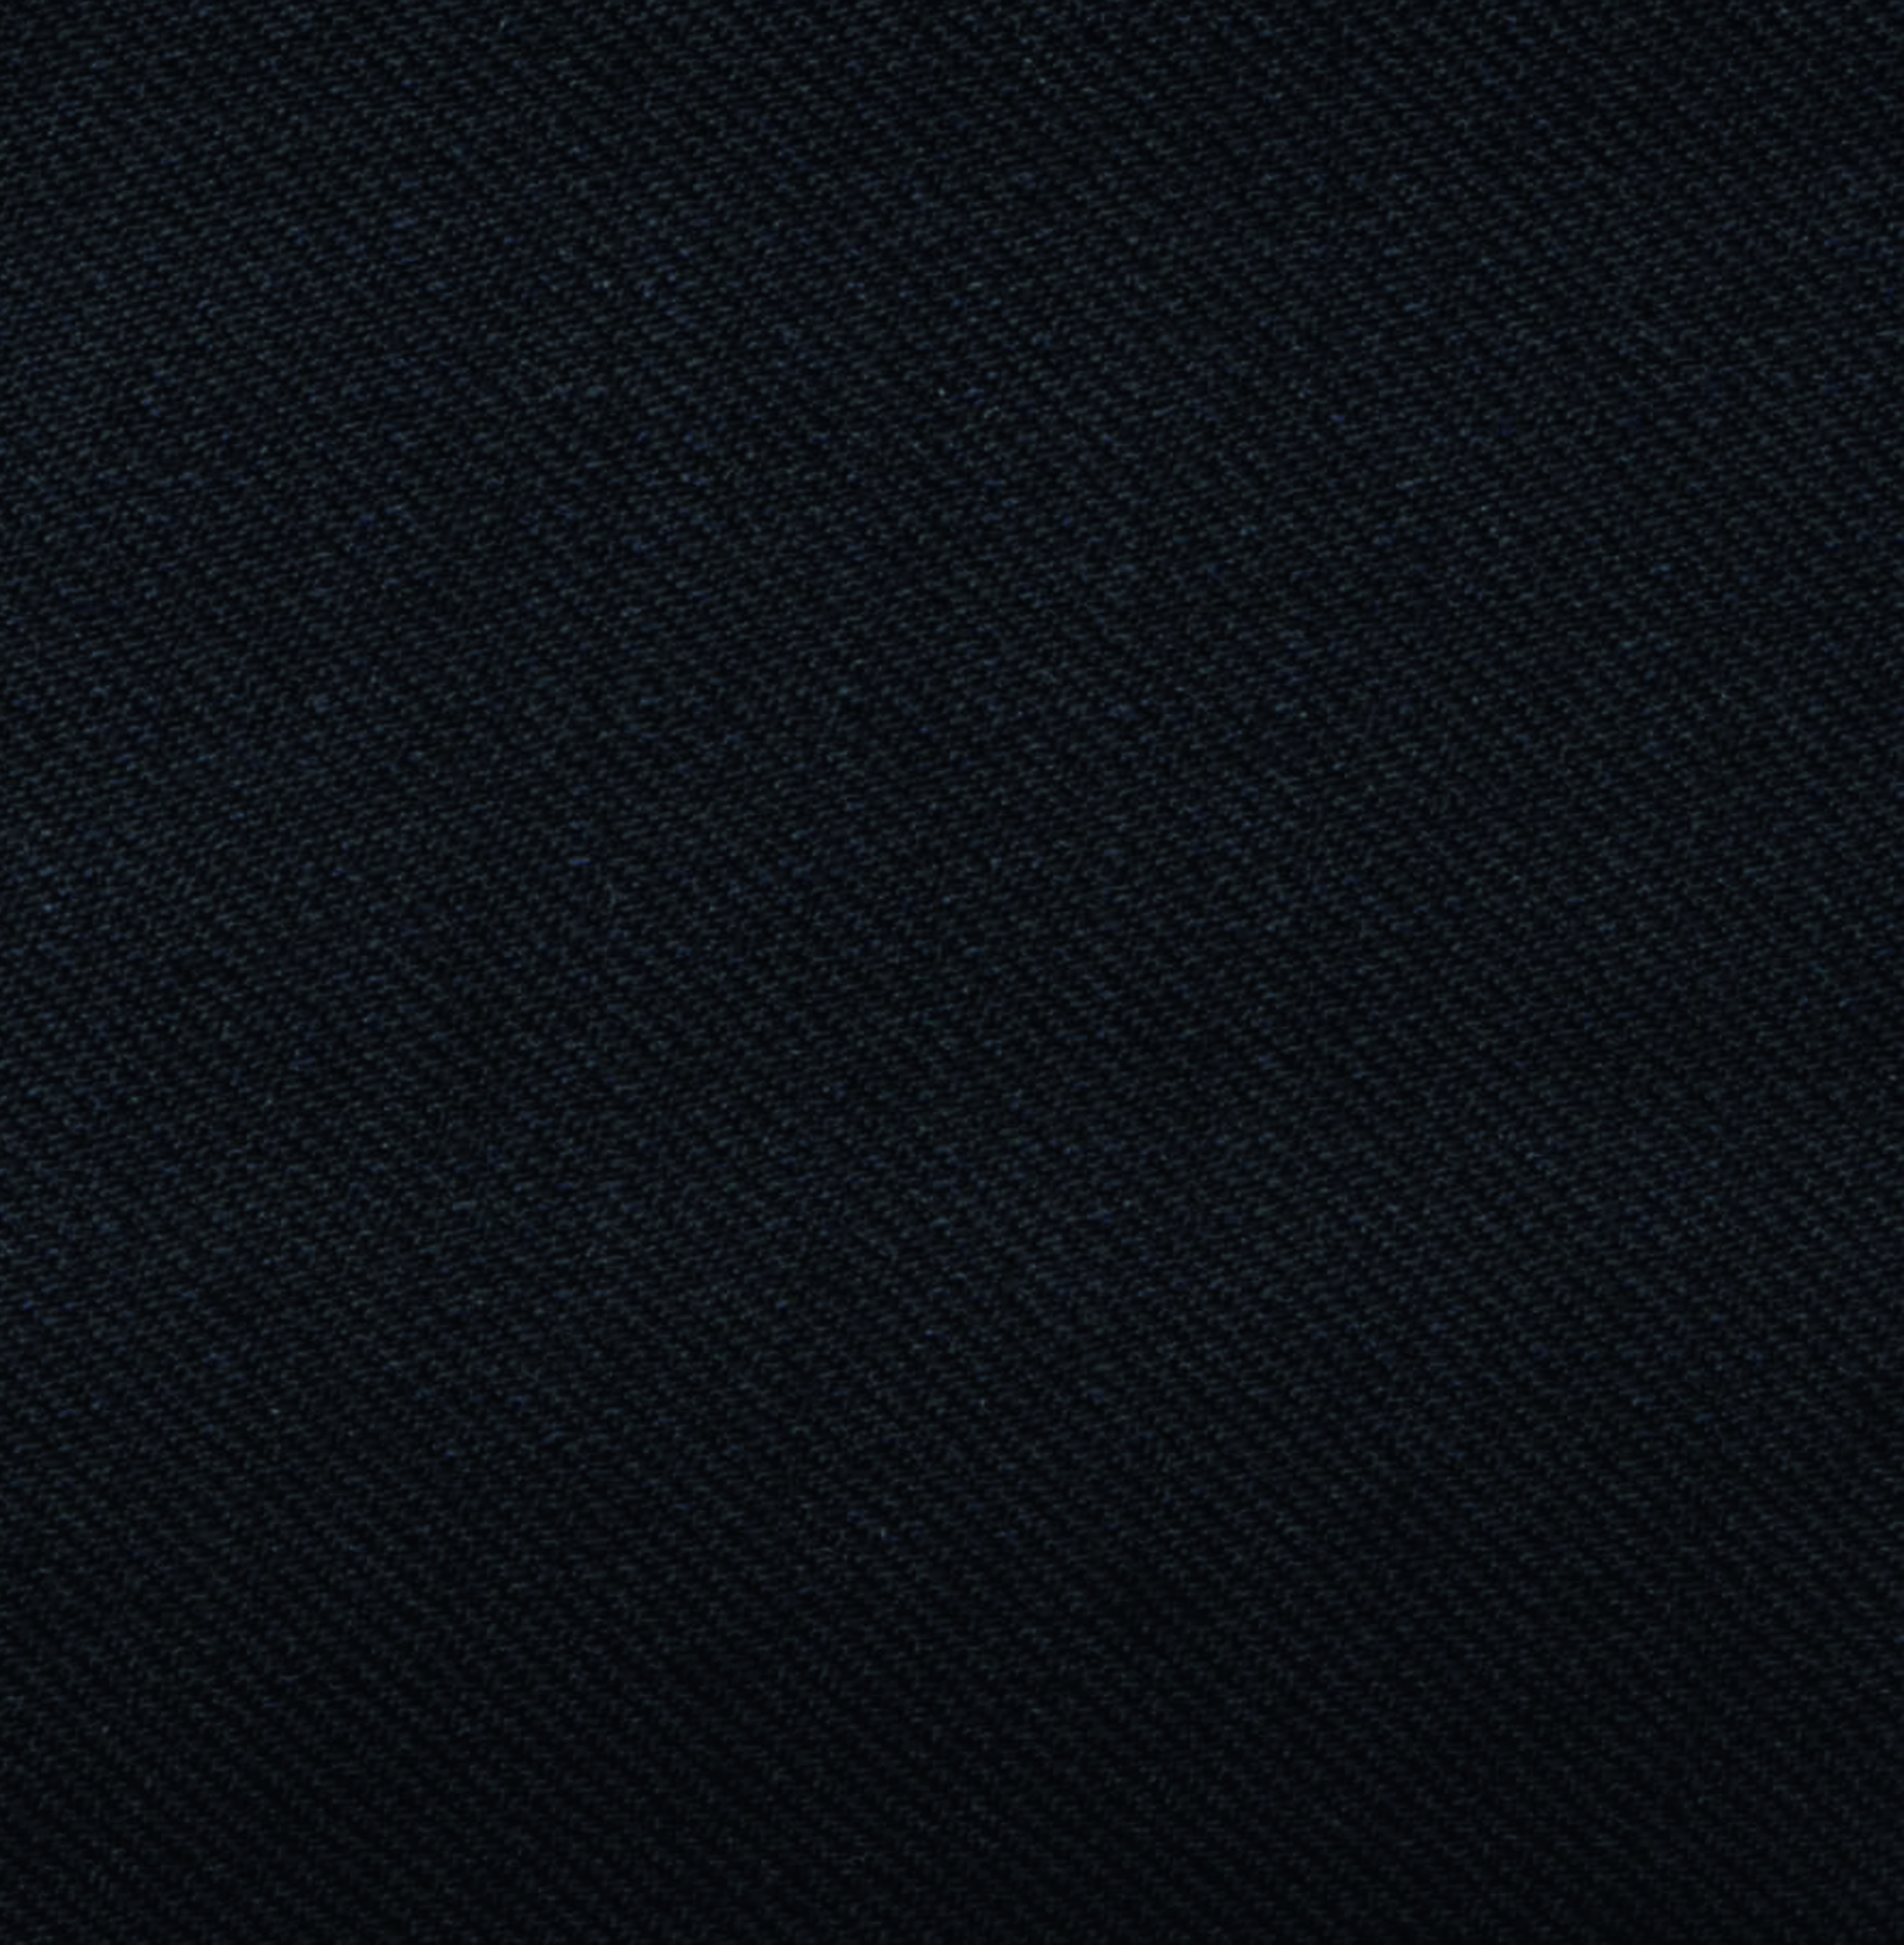 Buy tailor made shirts online - Luxurious Pure New Wool - Black. No lining